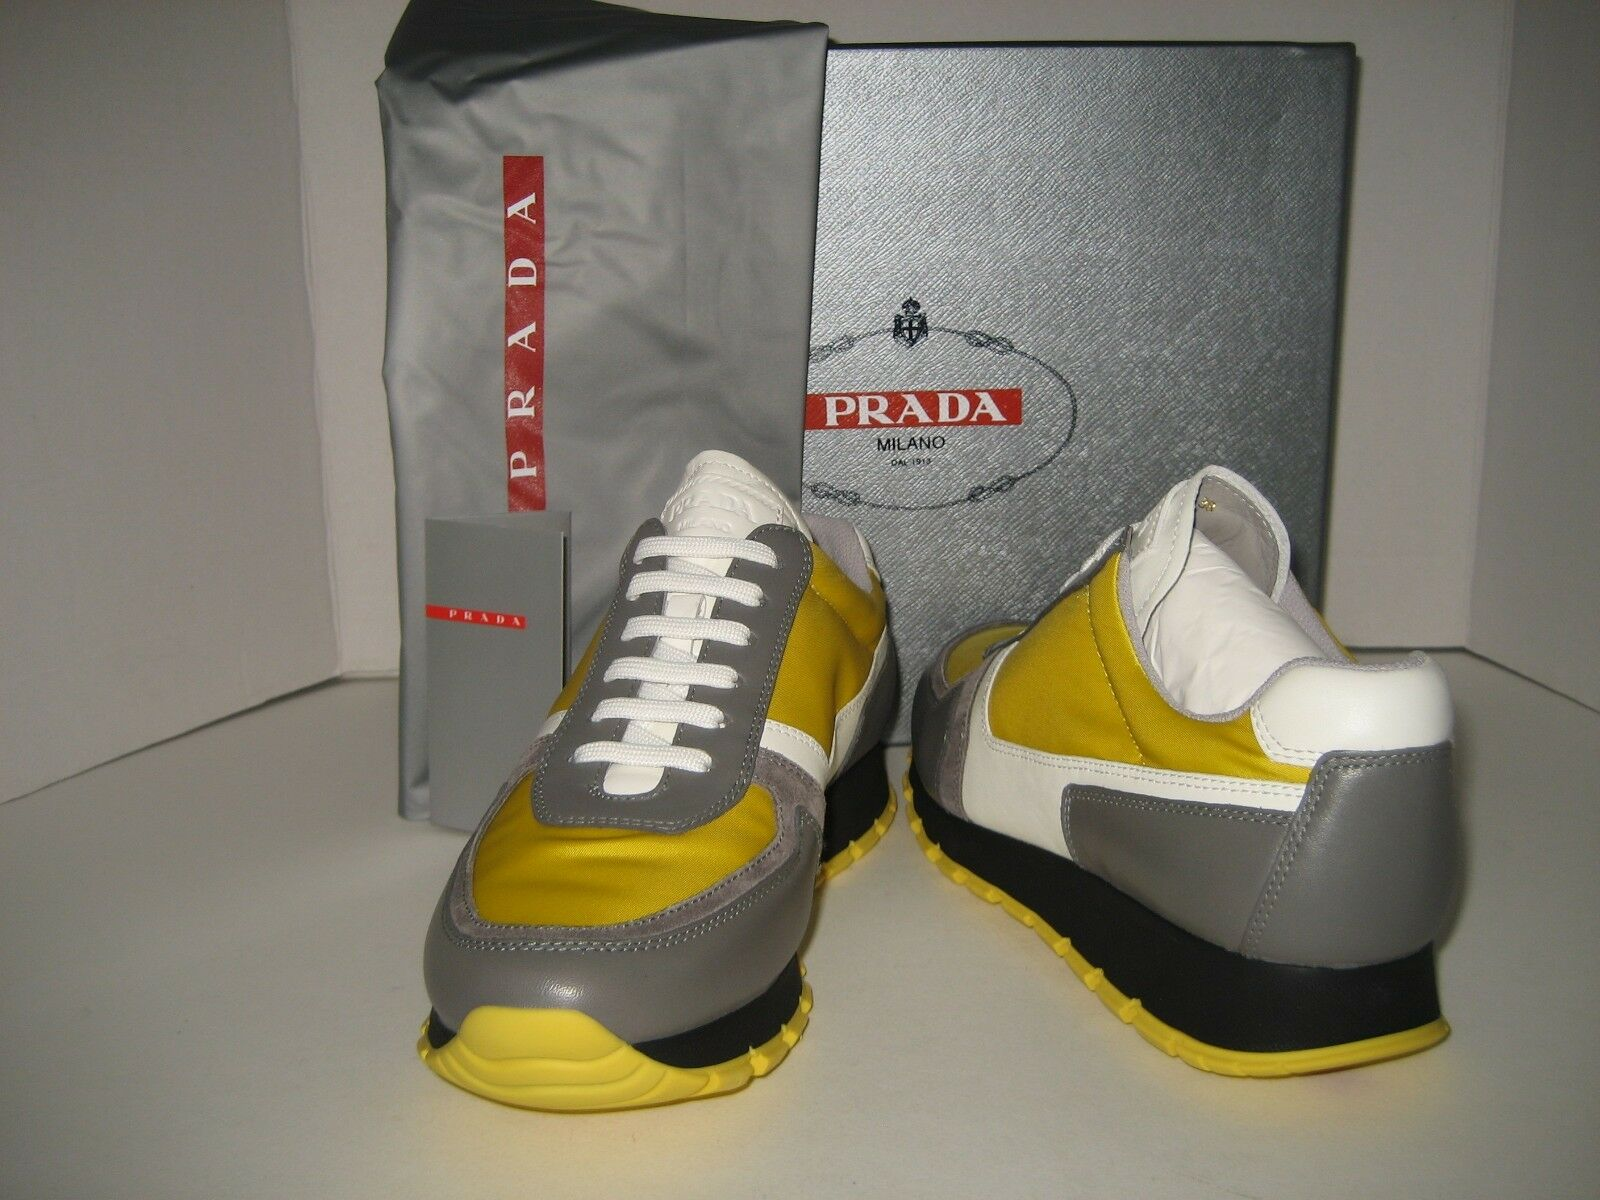 New PRADA Women US 7.5 EU 38 Sneakers Yellow Black White Leather Tennis shoes BX